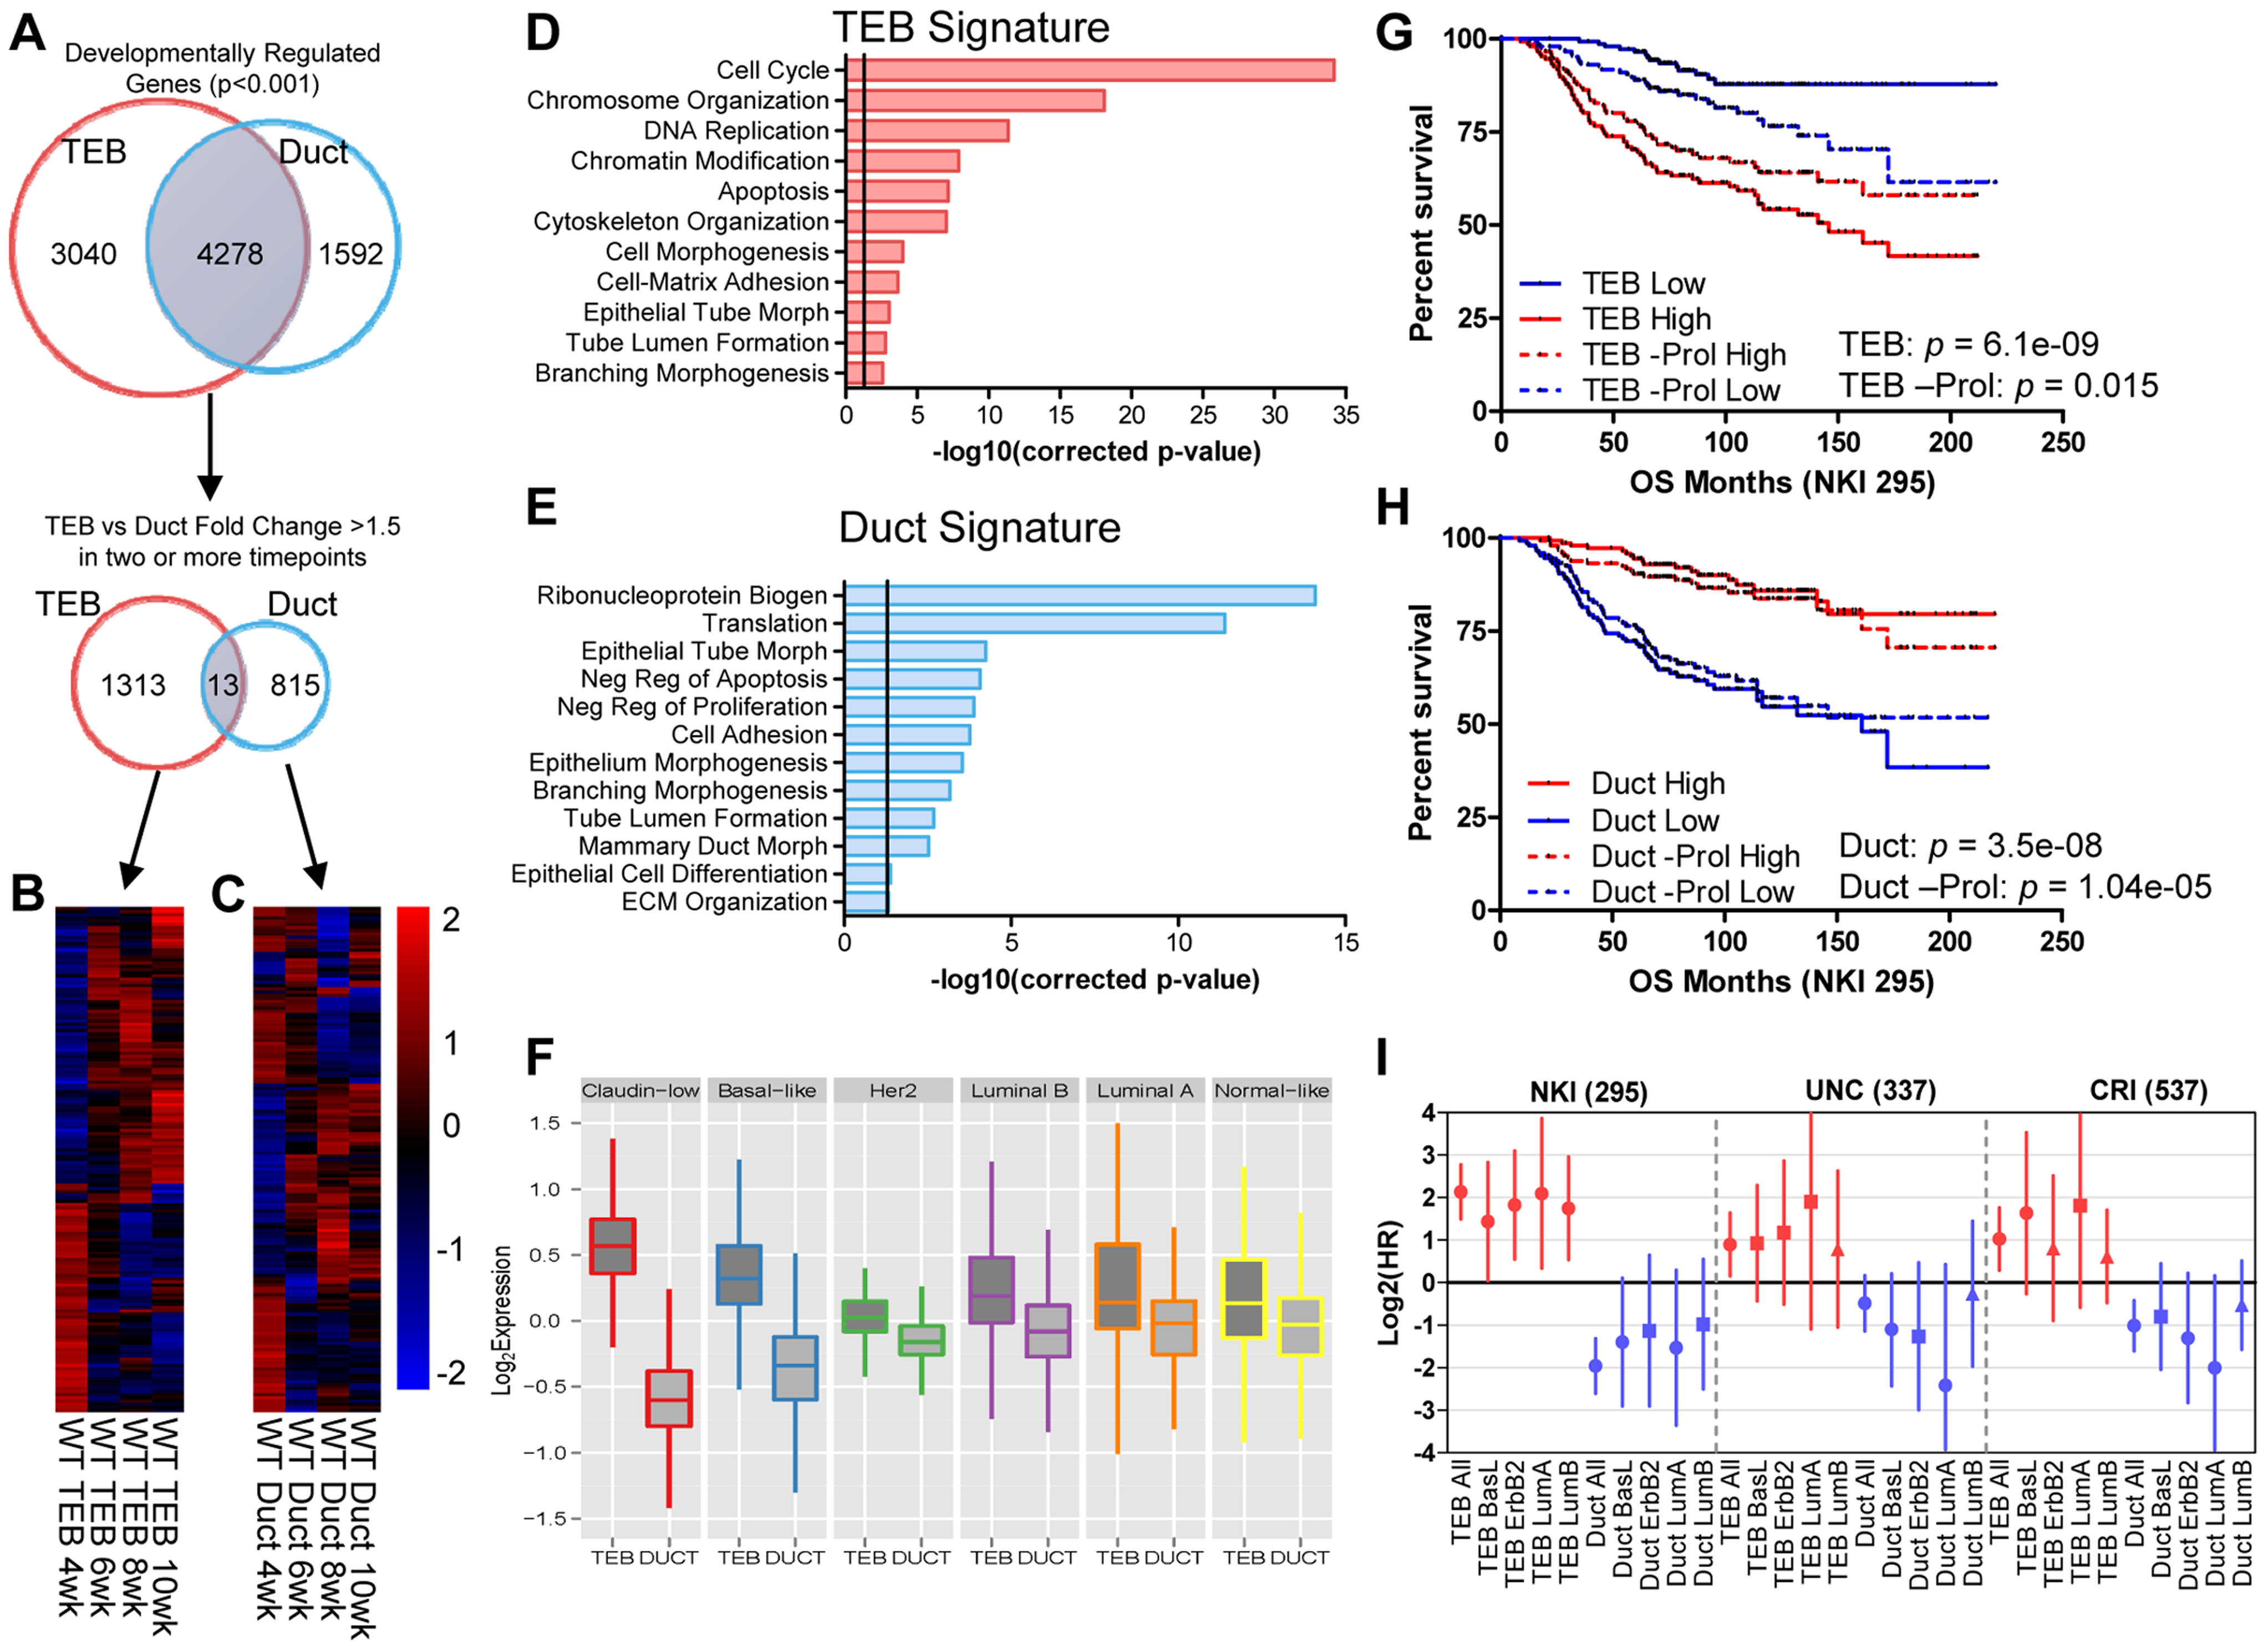 Developmental TEB and duct gene signatures derived from time course expression profiling predict breast cancer prognosis.